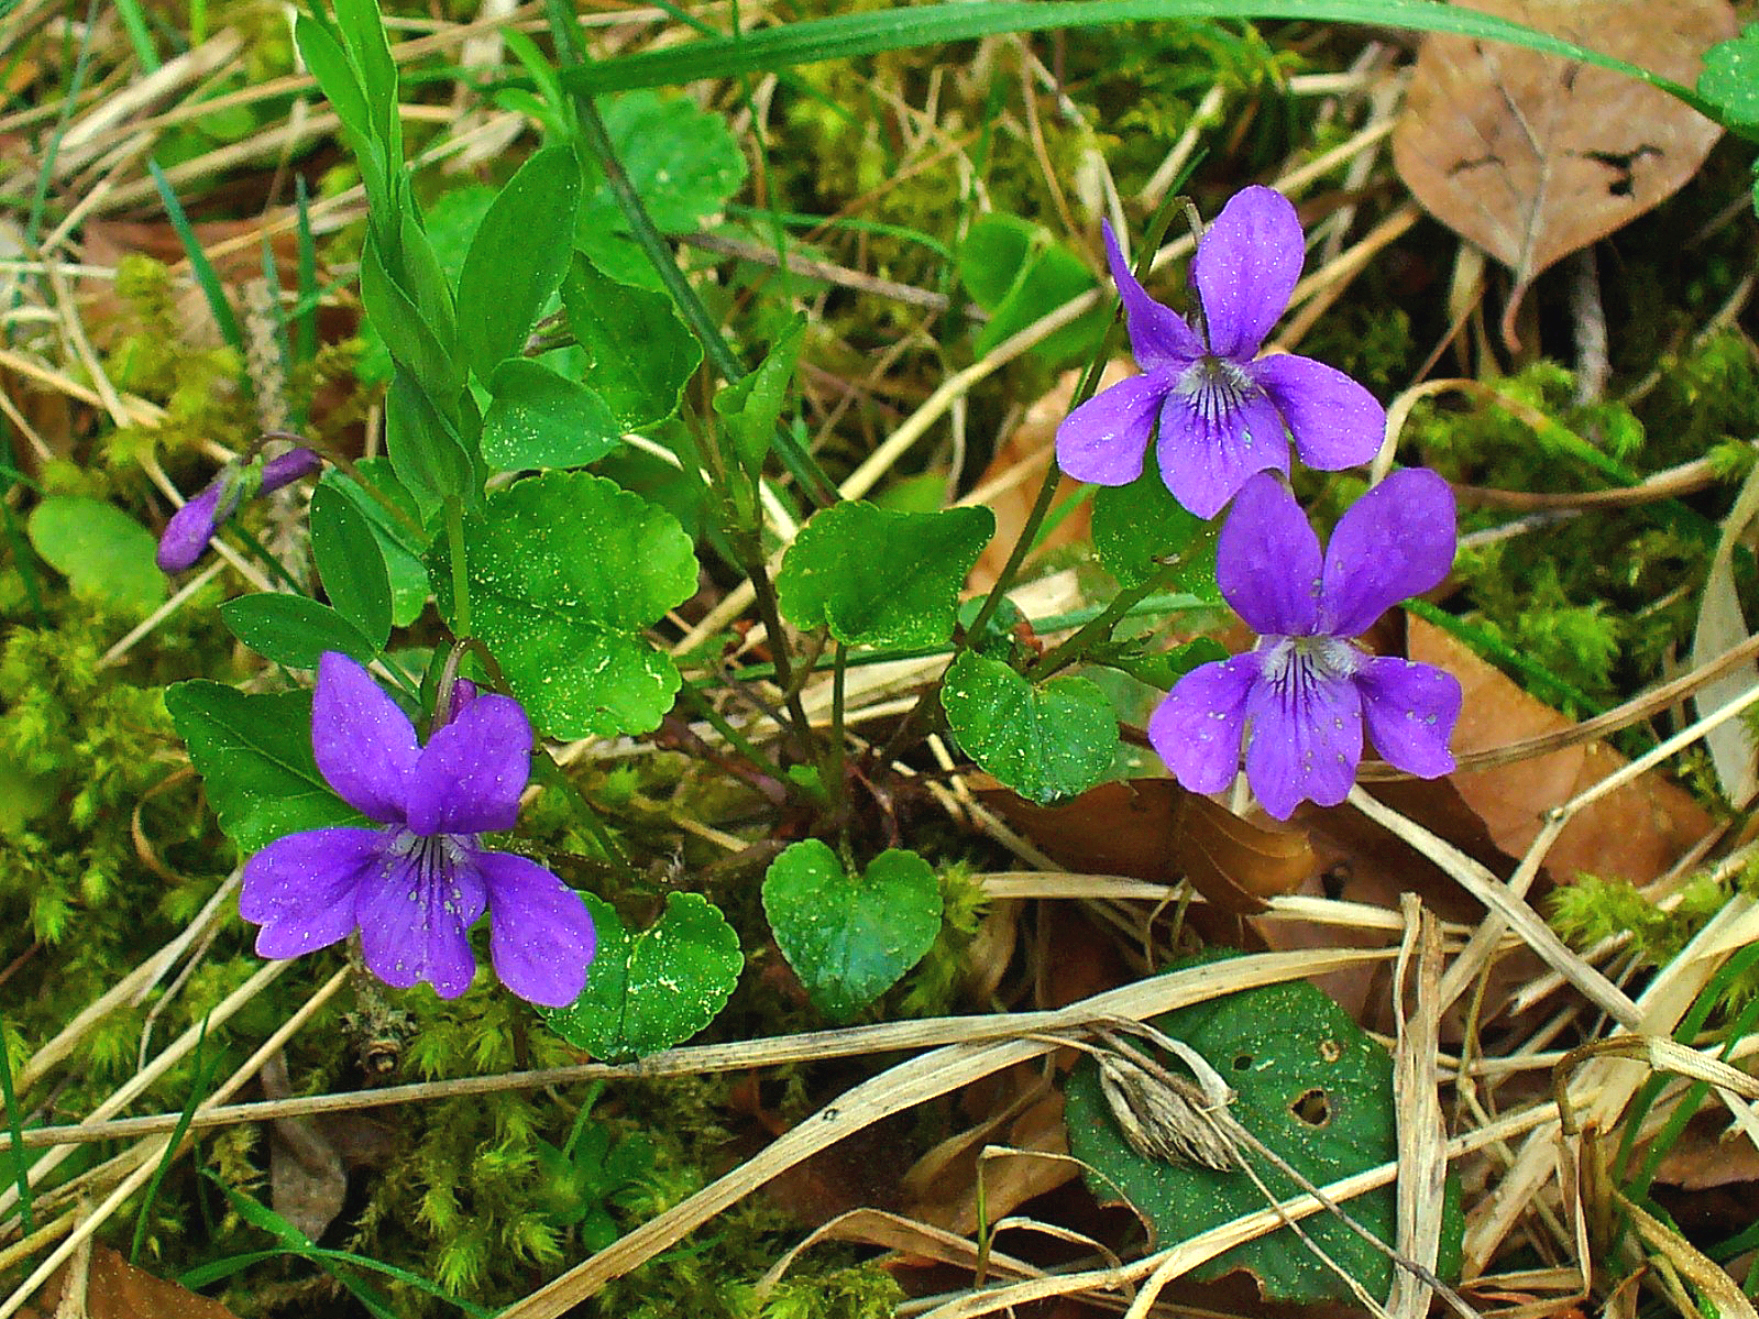 Violets with five irregular petals and heart-shaped leaves - image by H. Zell of Wikipedia